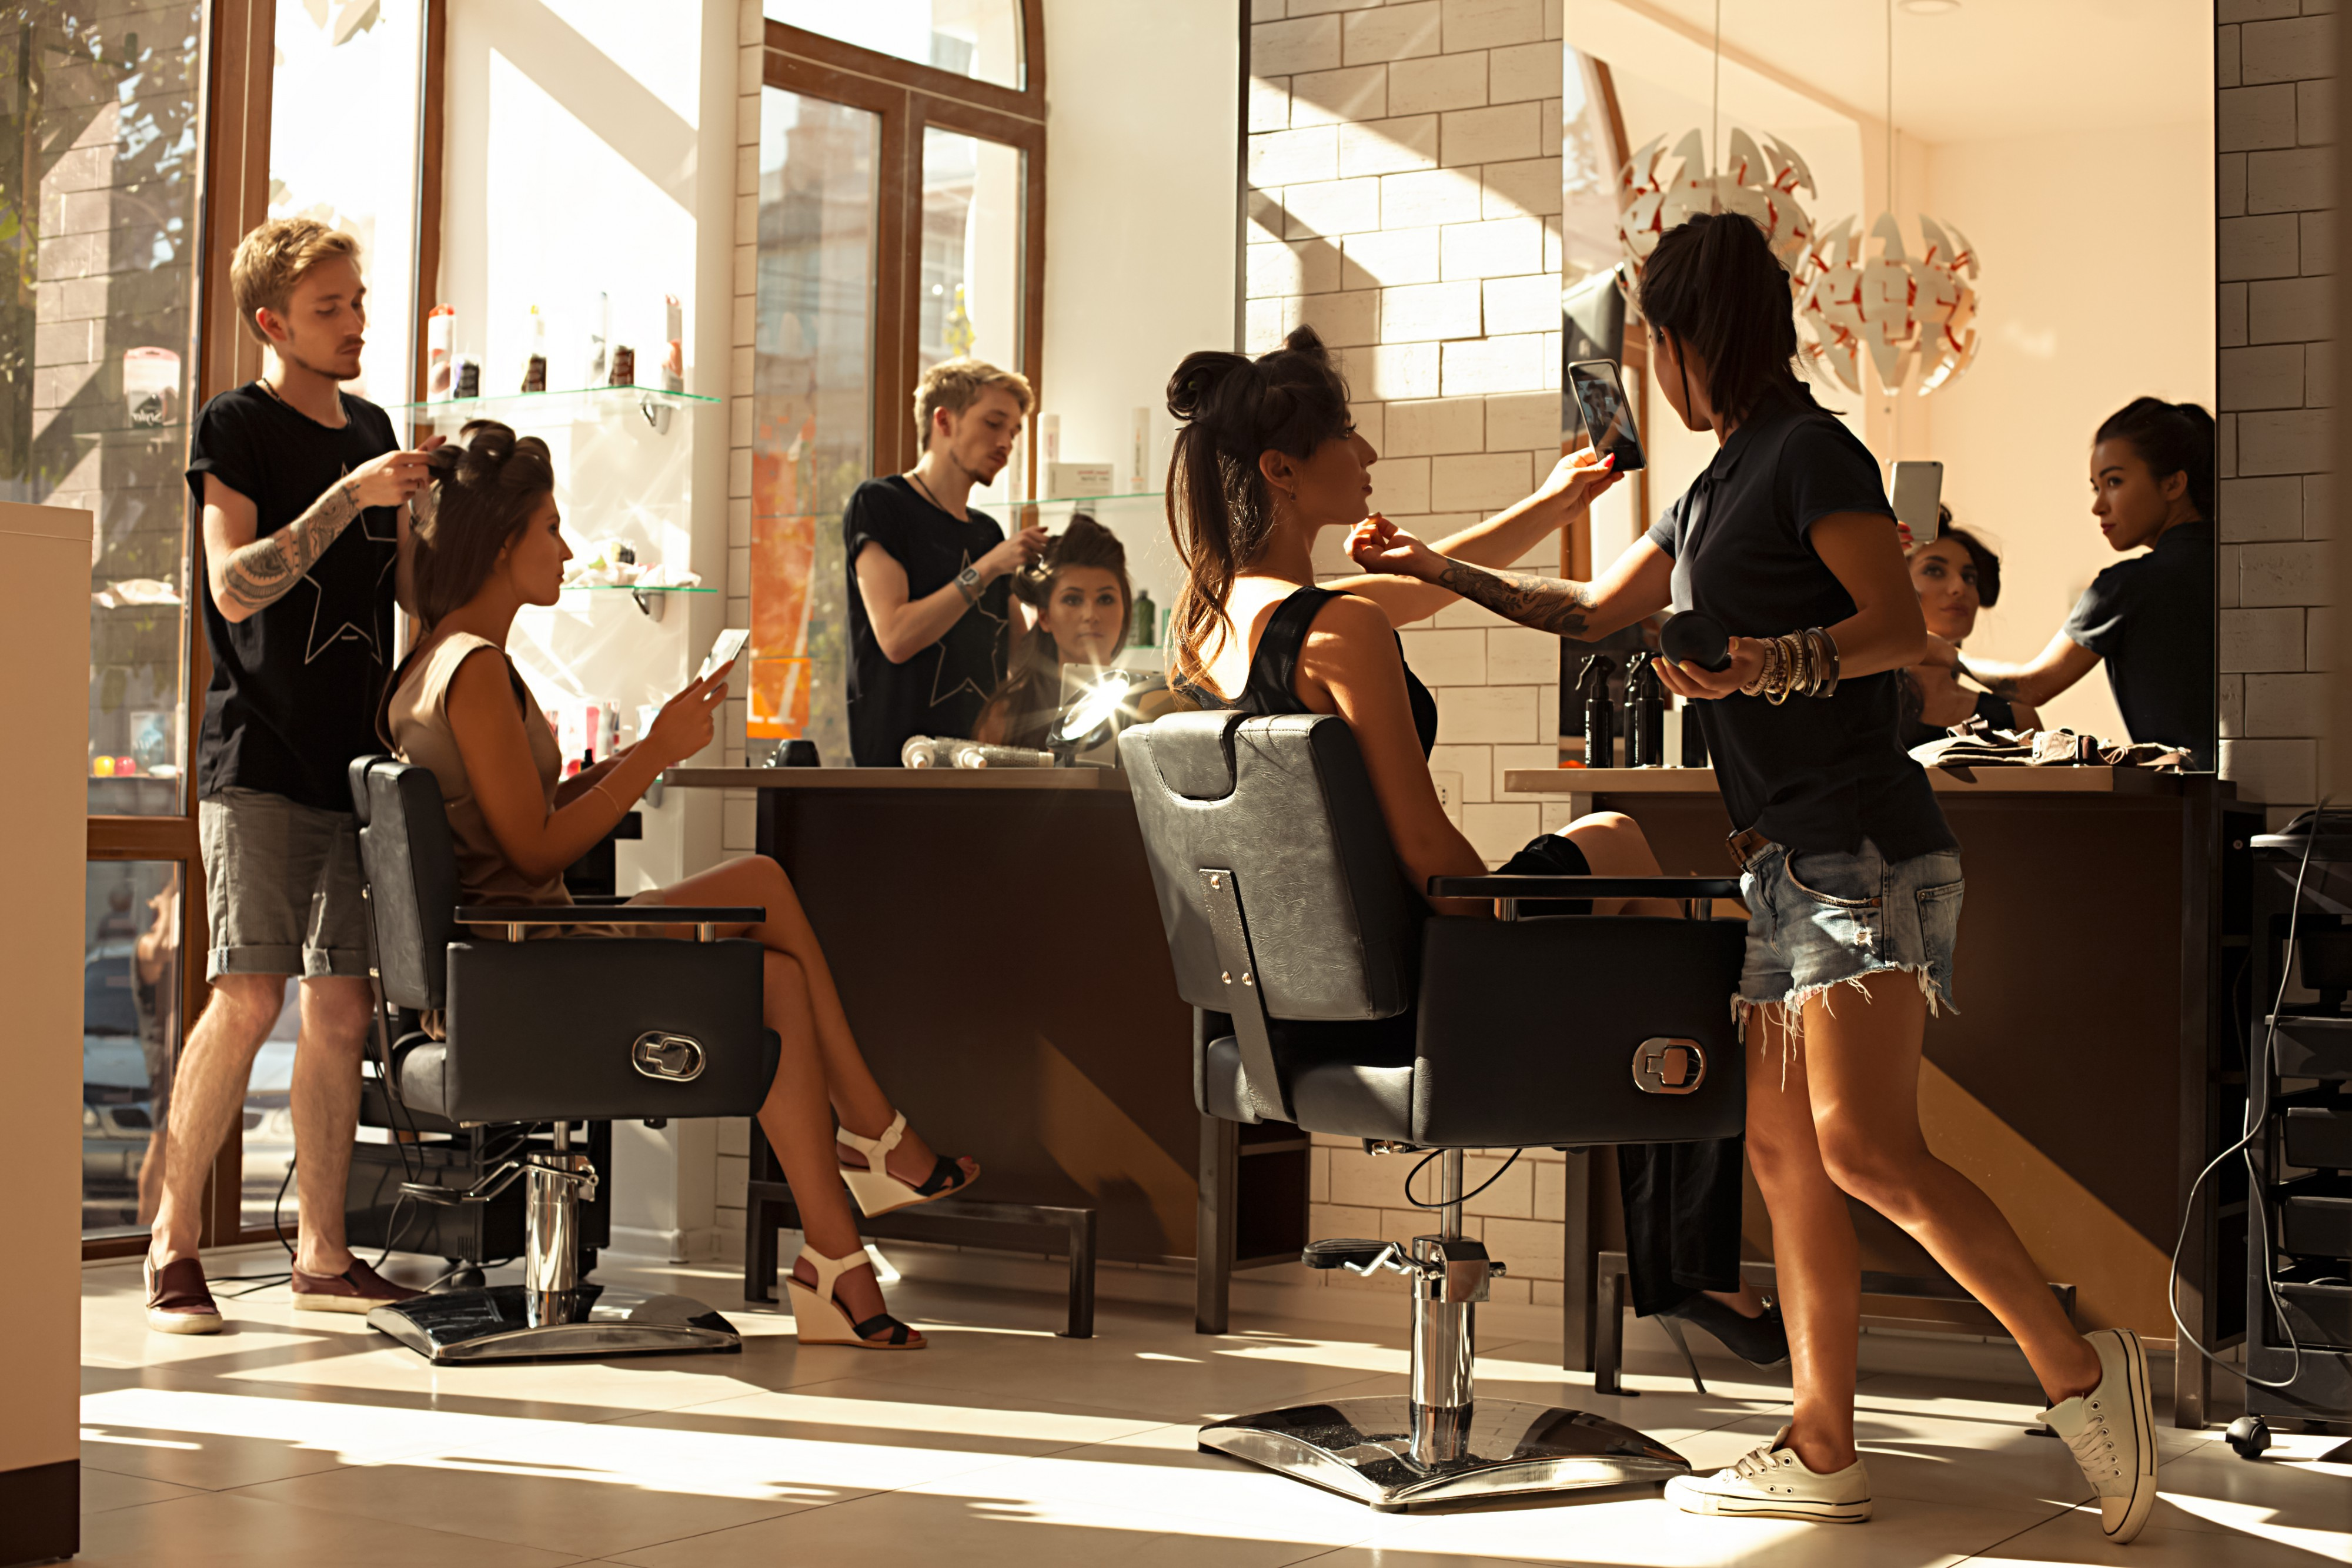 21 Hair Salon Marketing Ideas for 2017